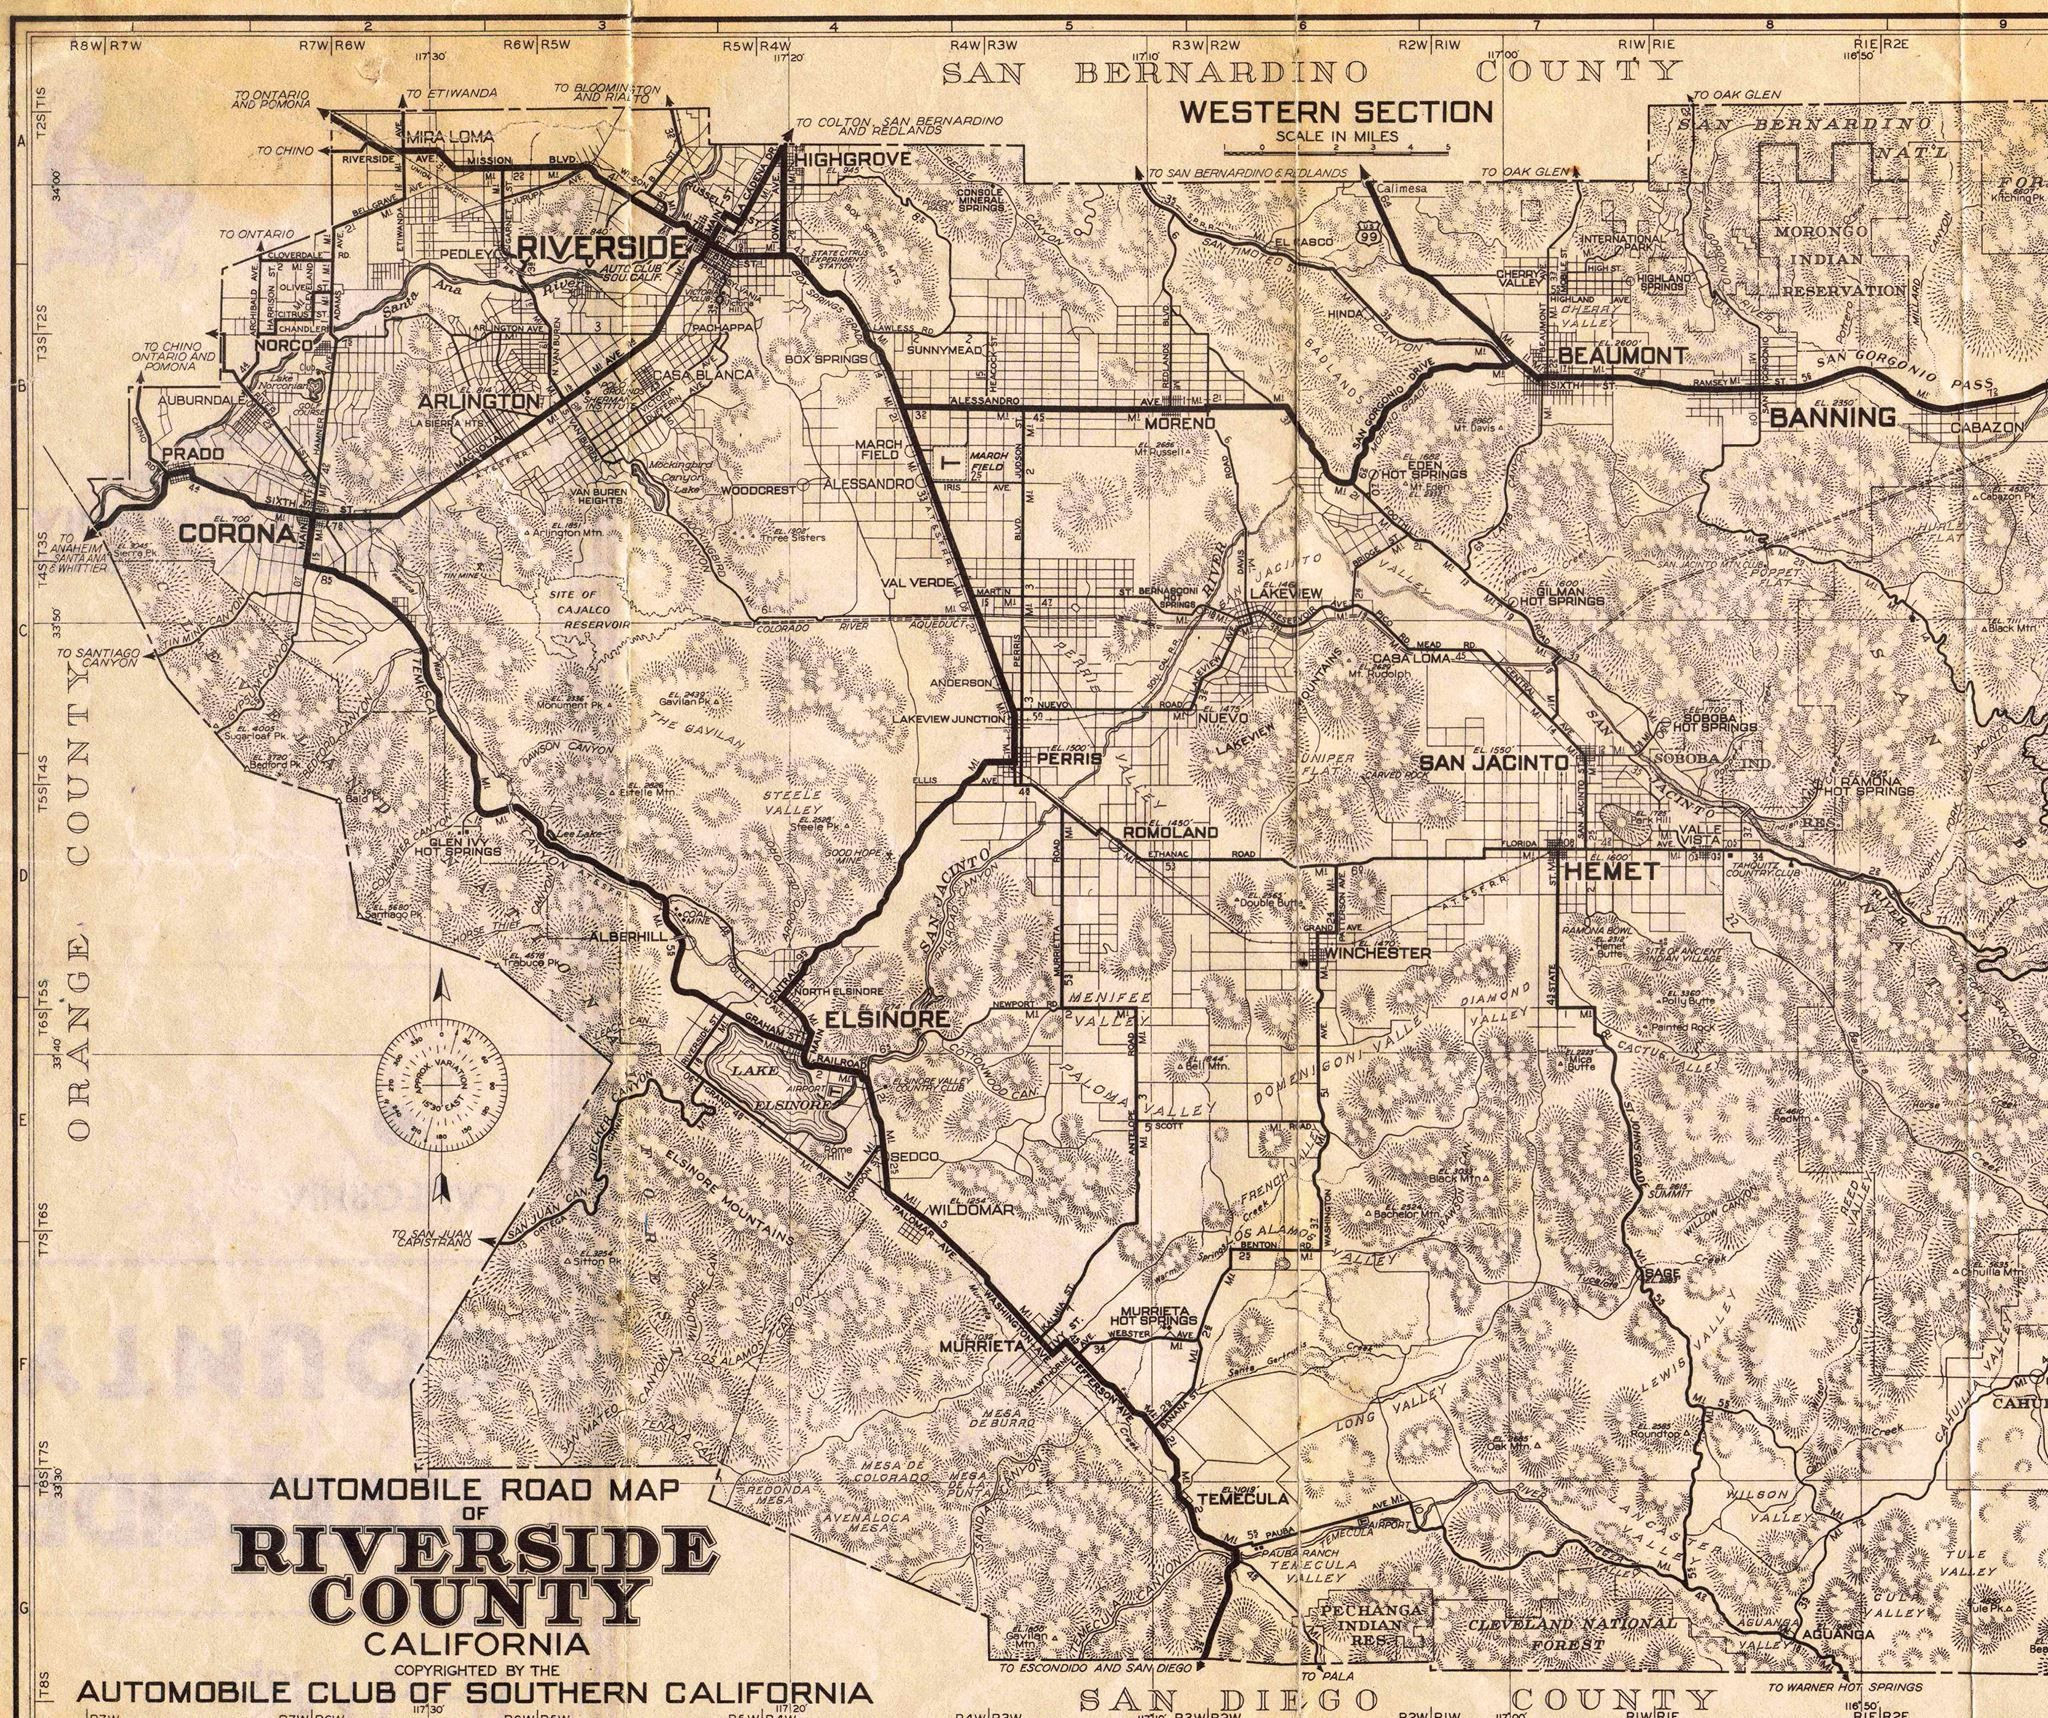 Map Of Riverside County California Free Printable Riverside County - Printable Map Of Riverside County